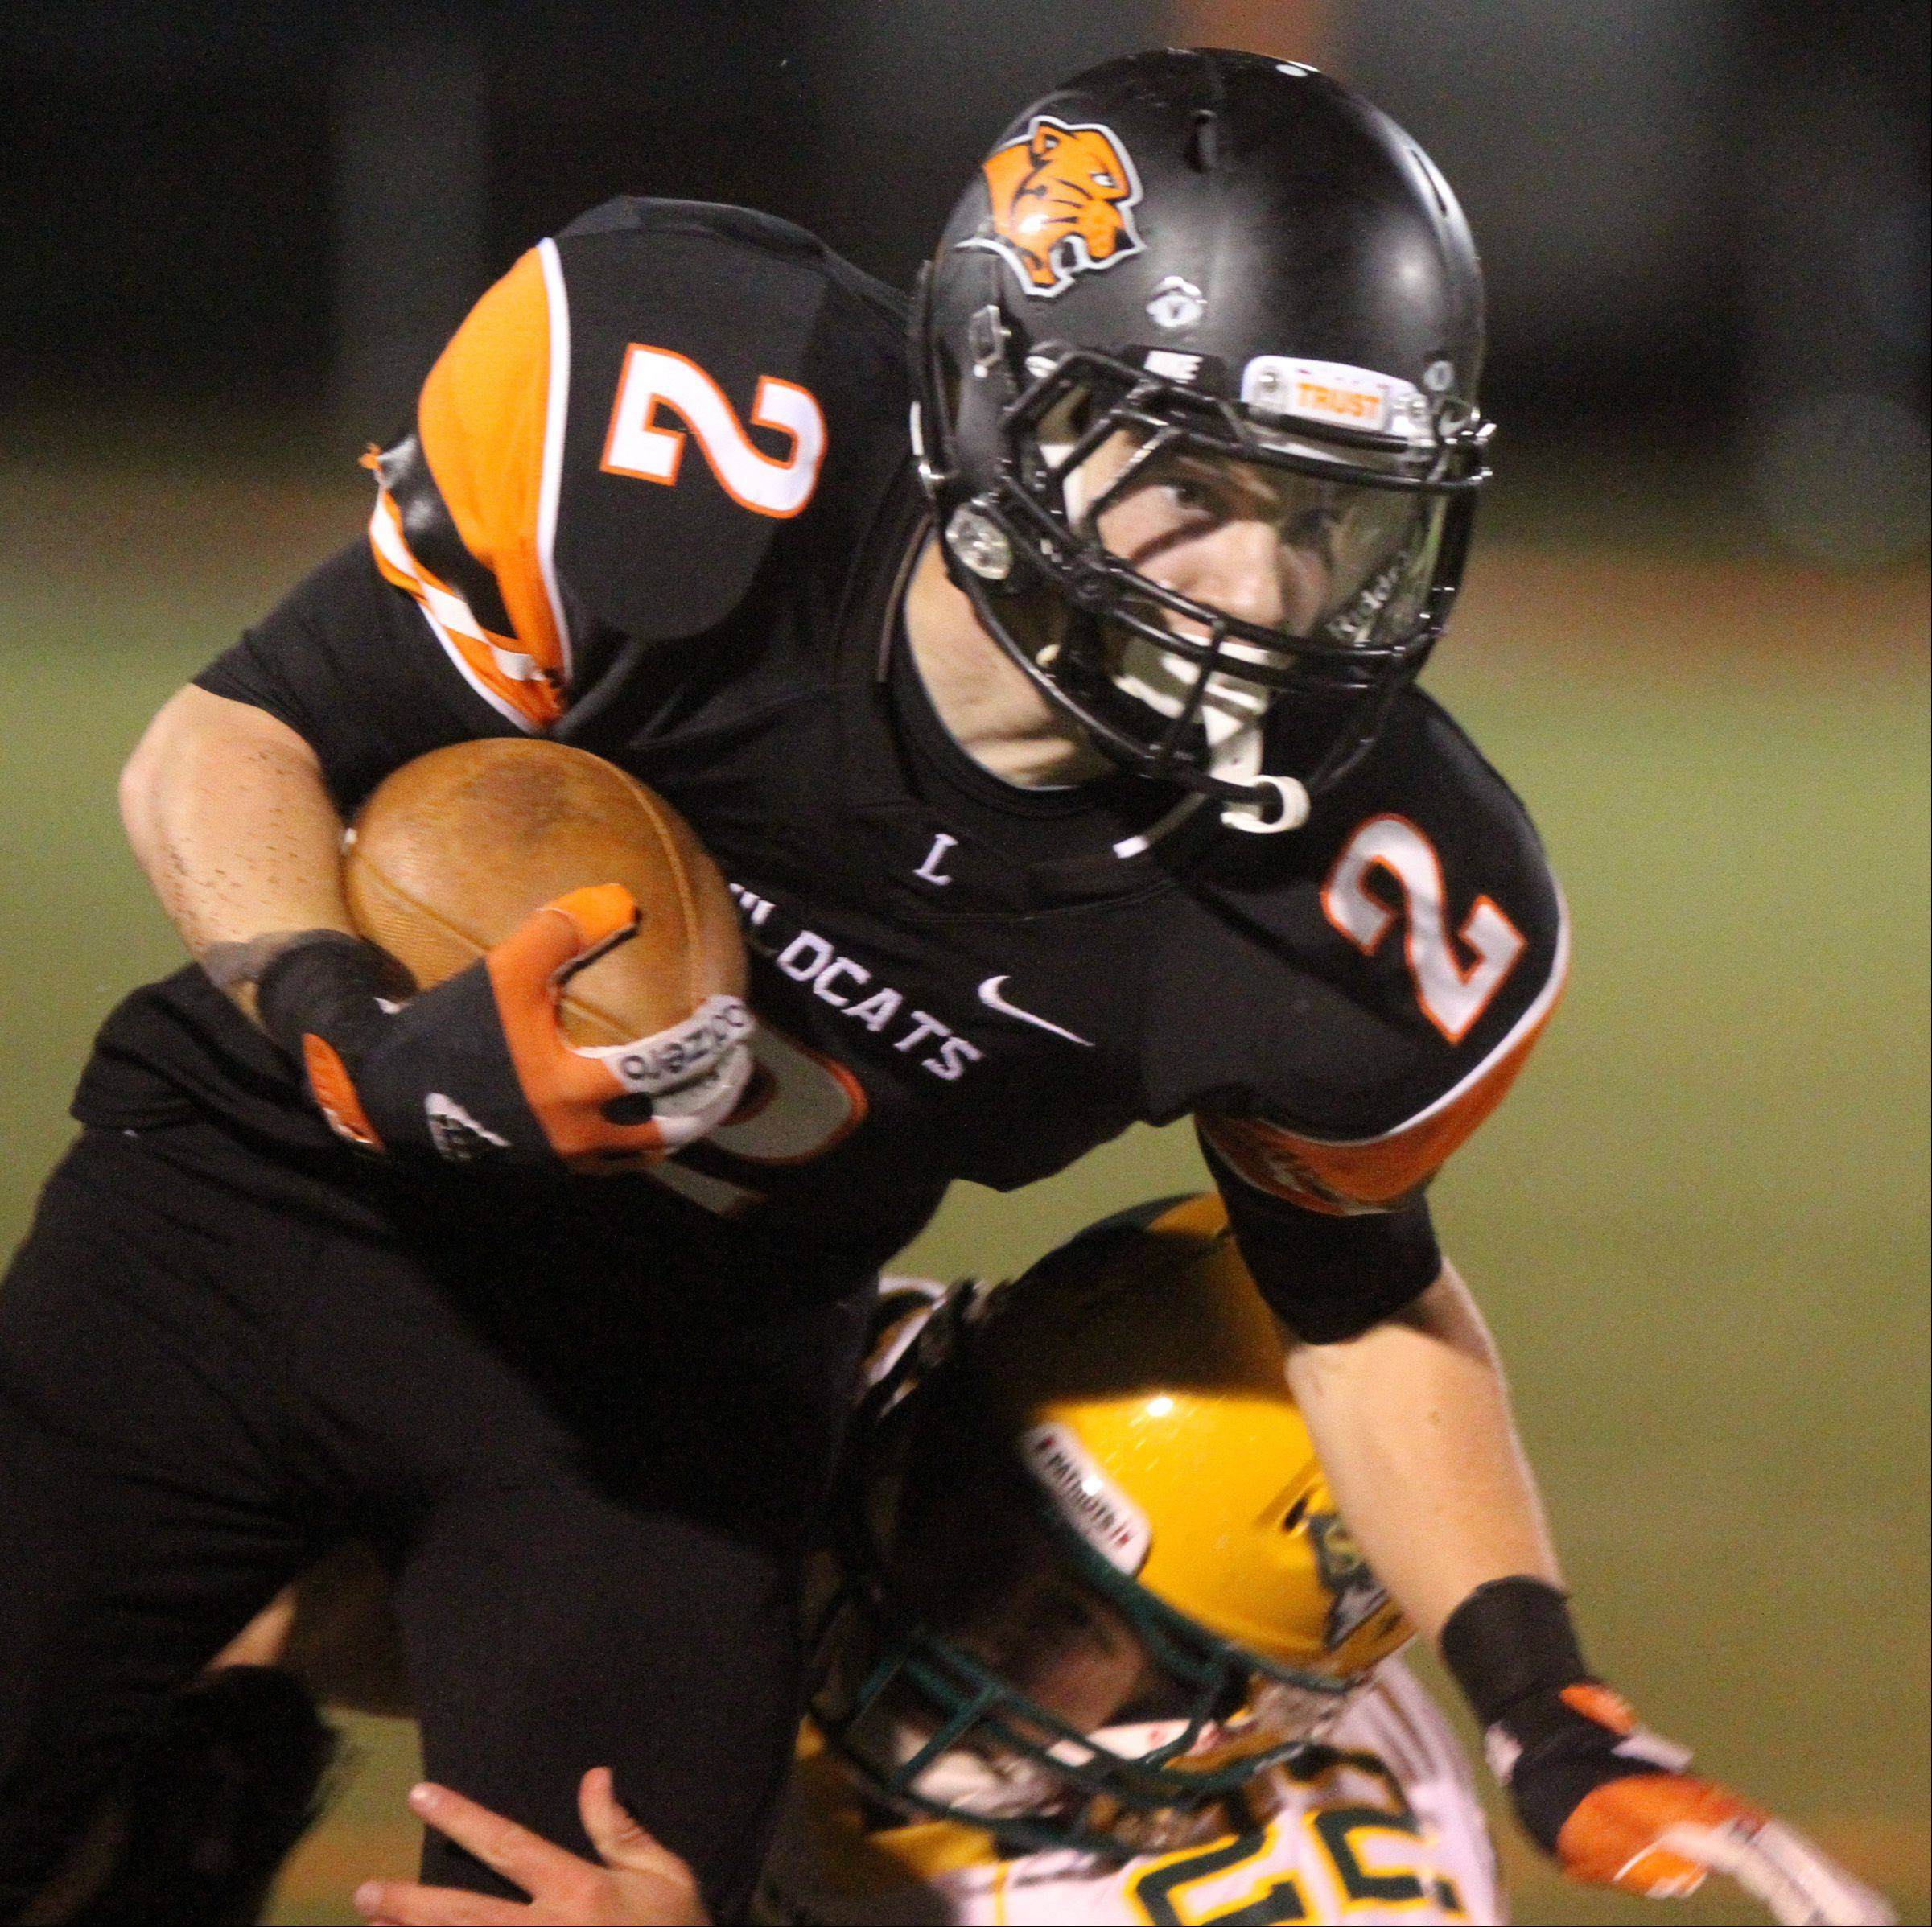 Libertyville running back Conor Simpson tucks the ball in against Stevenson defender Timmy Breen .